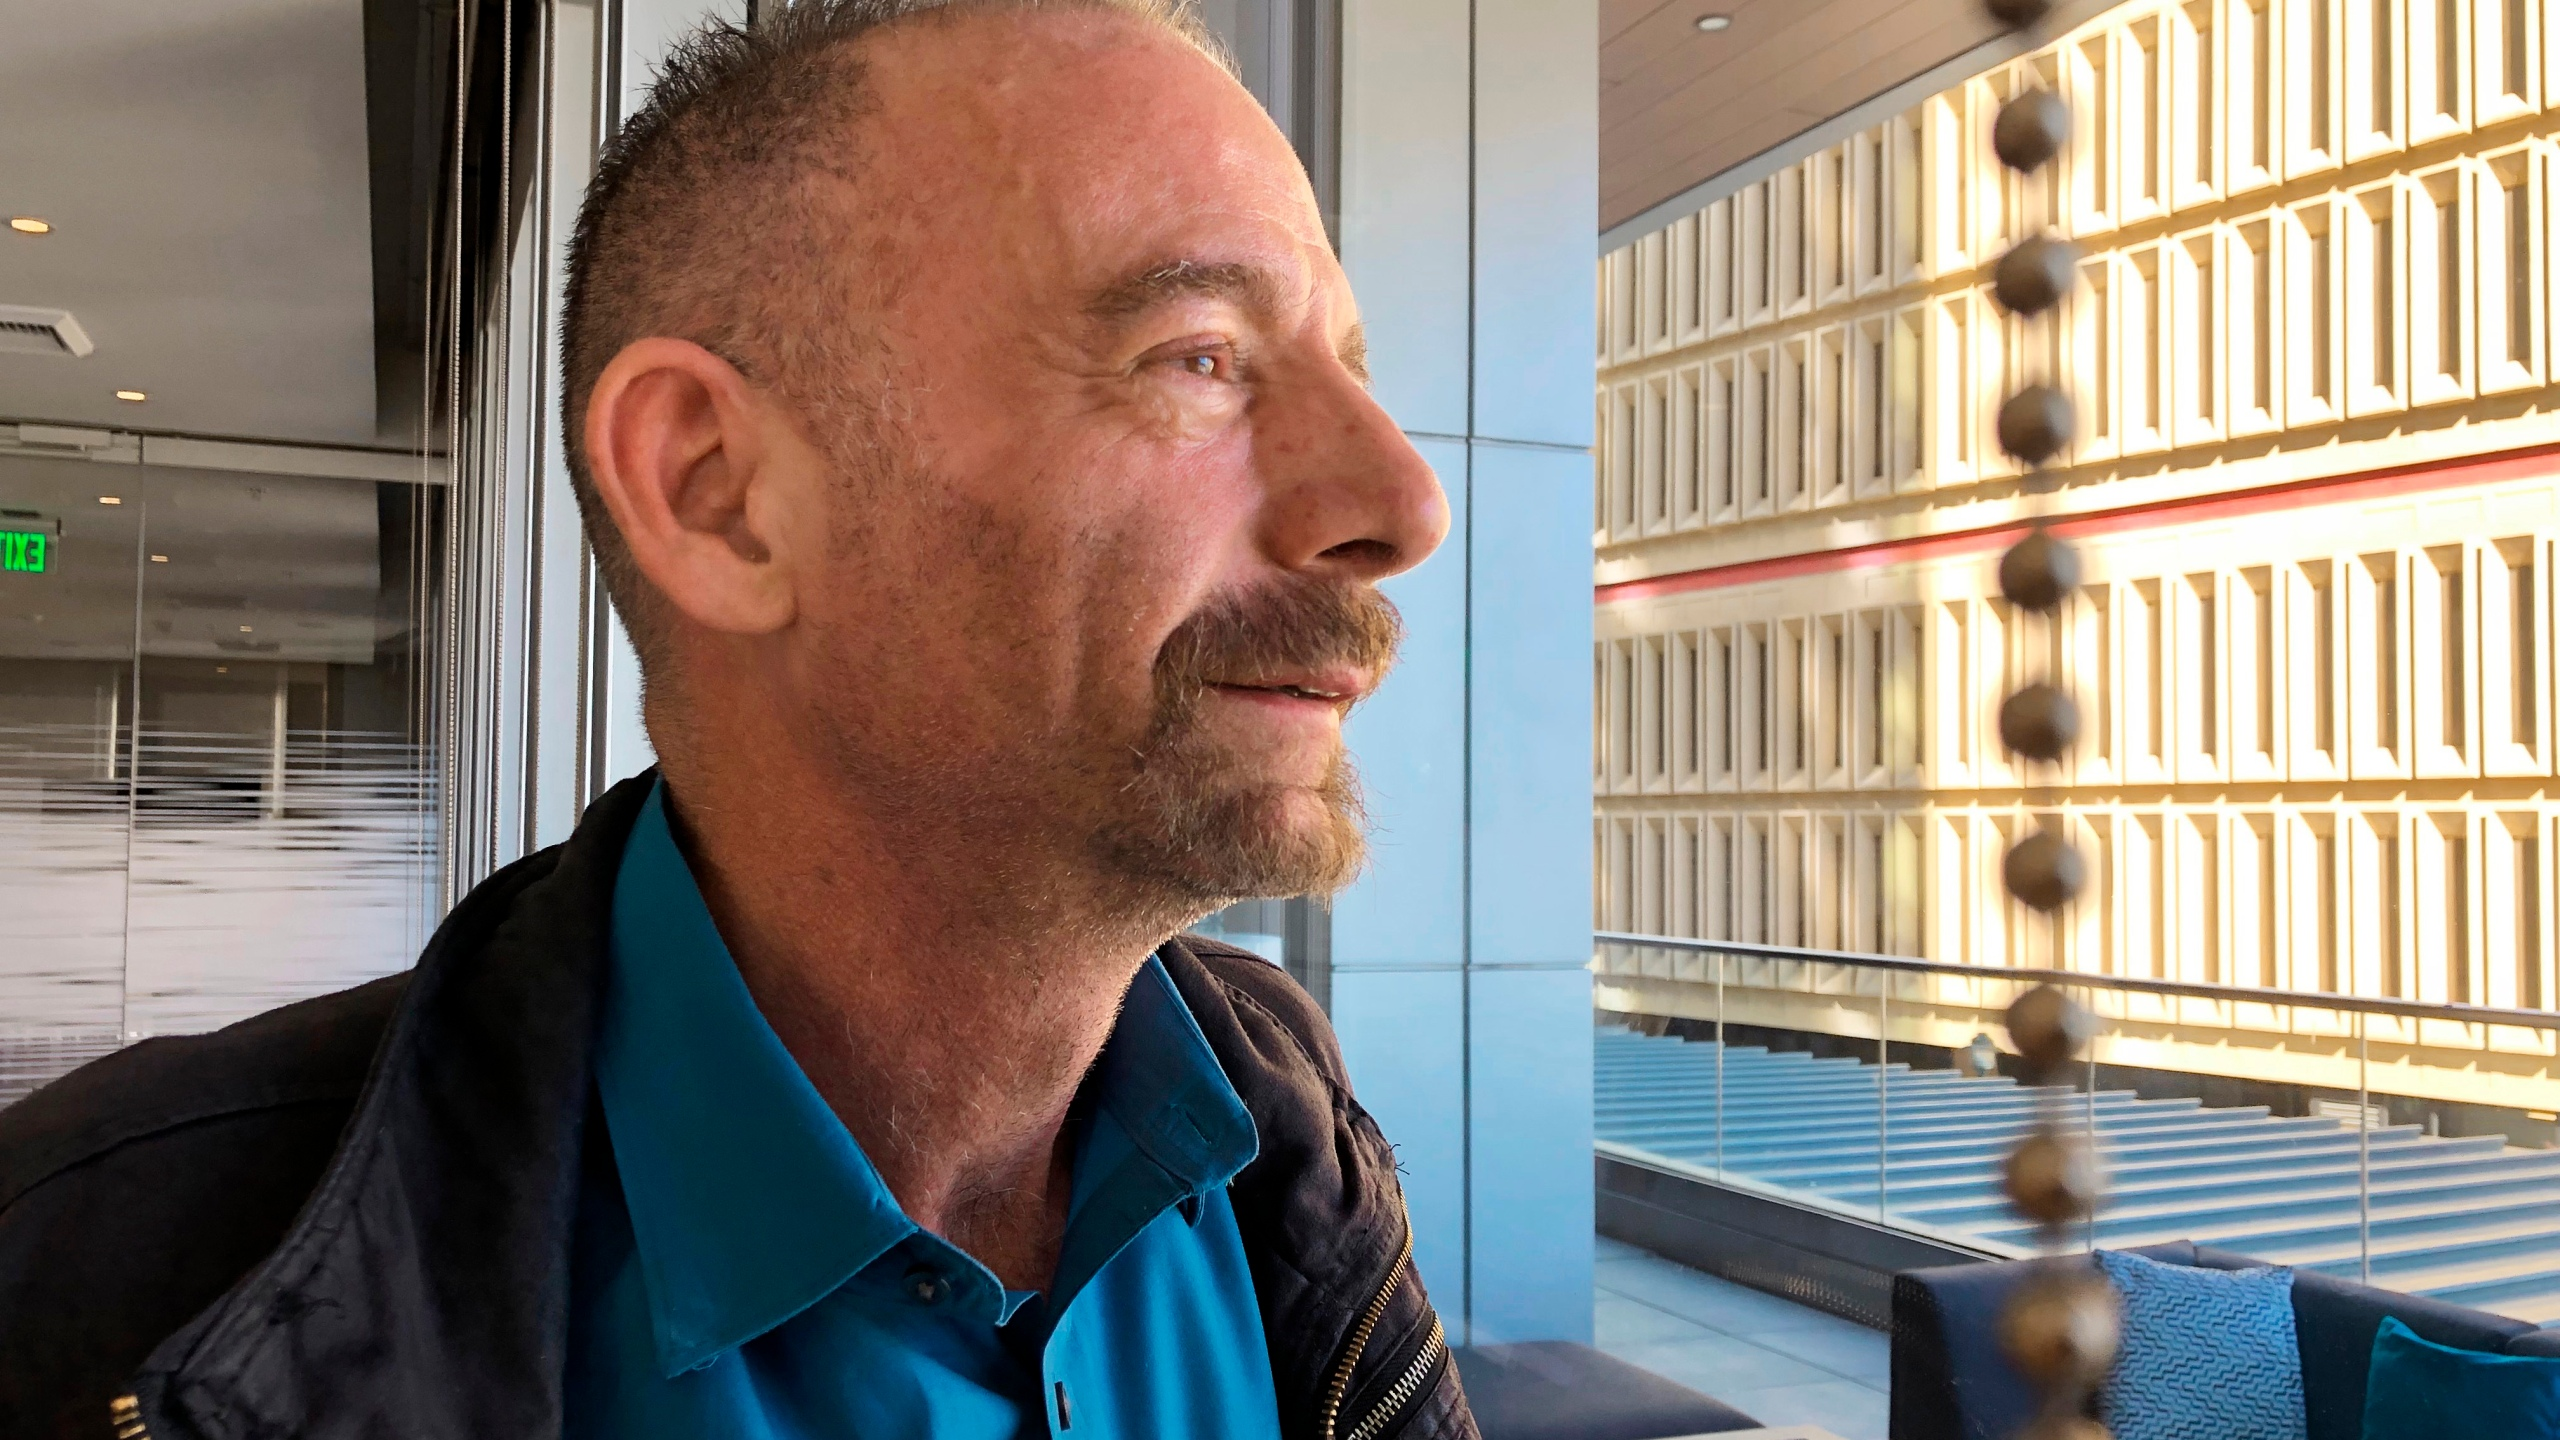 This March 4, 2019 file photo shows Timothy Ray Brown in Seattle. (AP Photo/Manuel Valdes, File)